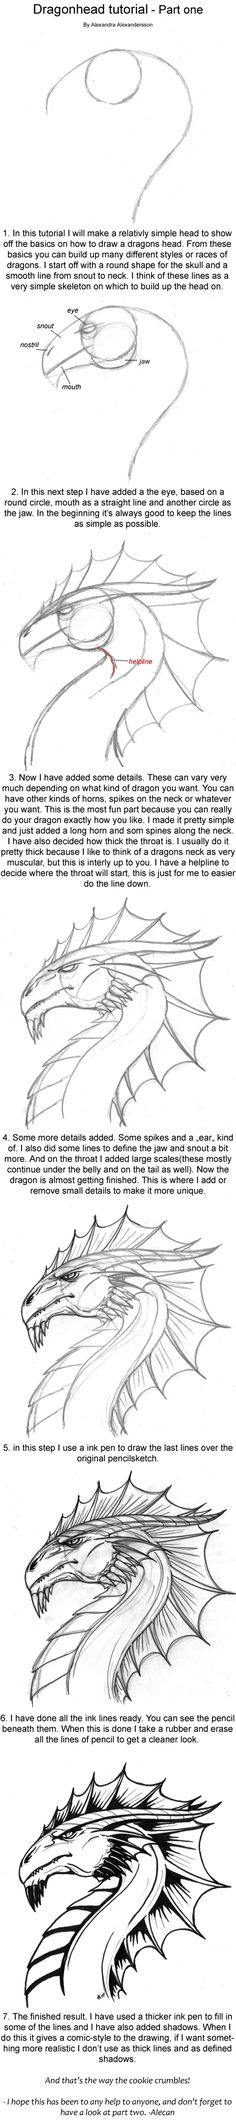 Dragonhead Tutorial part one by alecan.deviantart.com on @deviantART